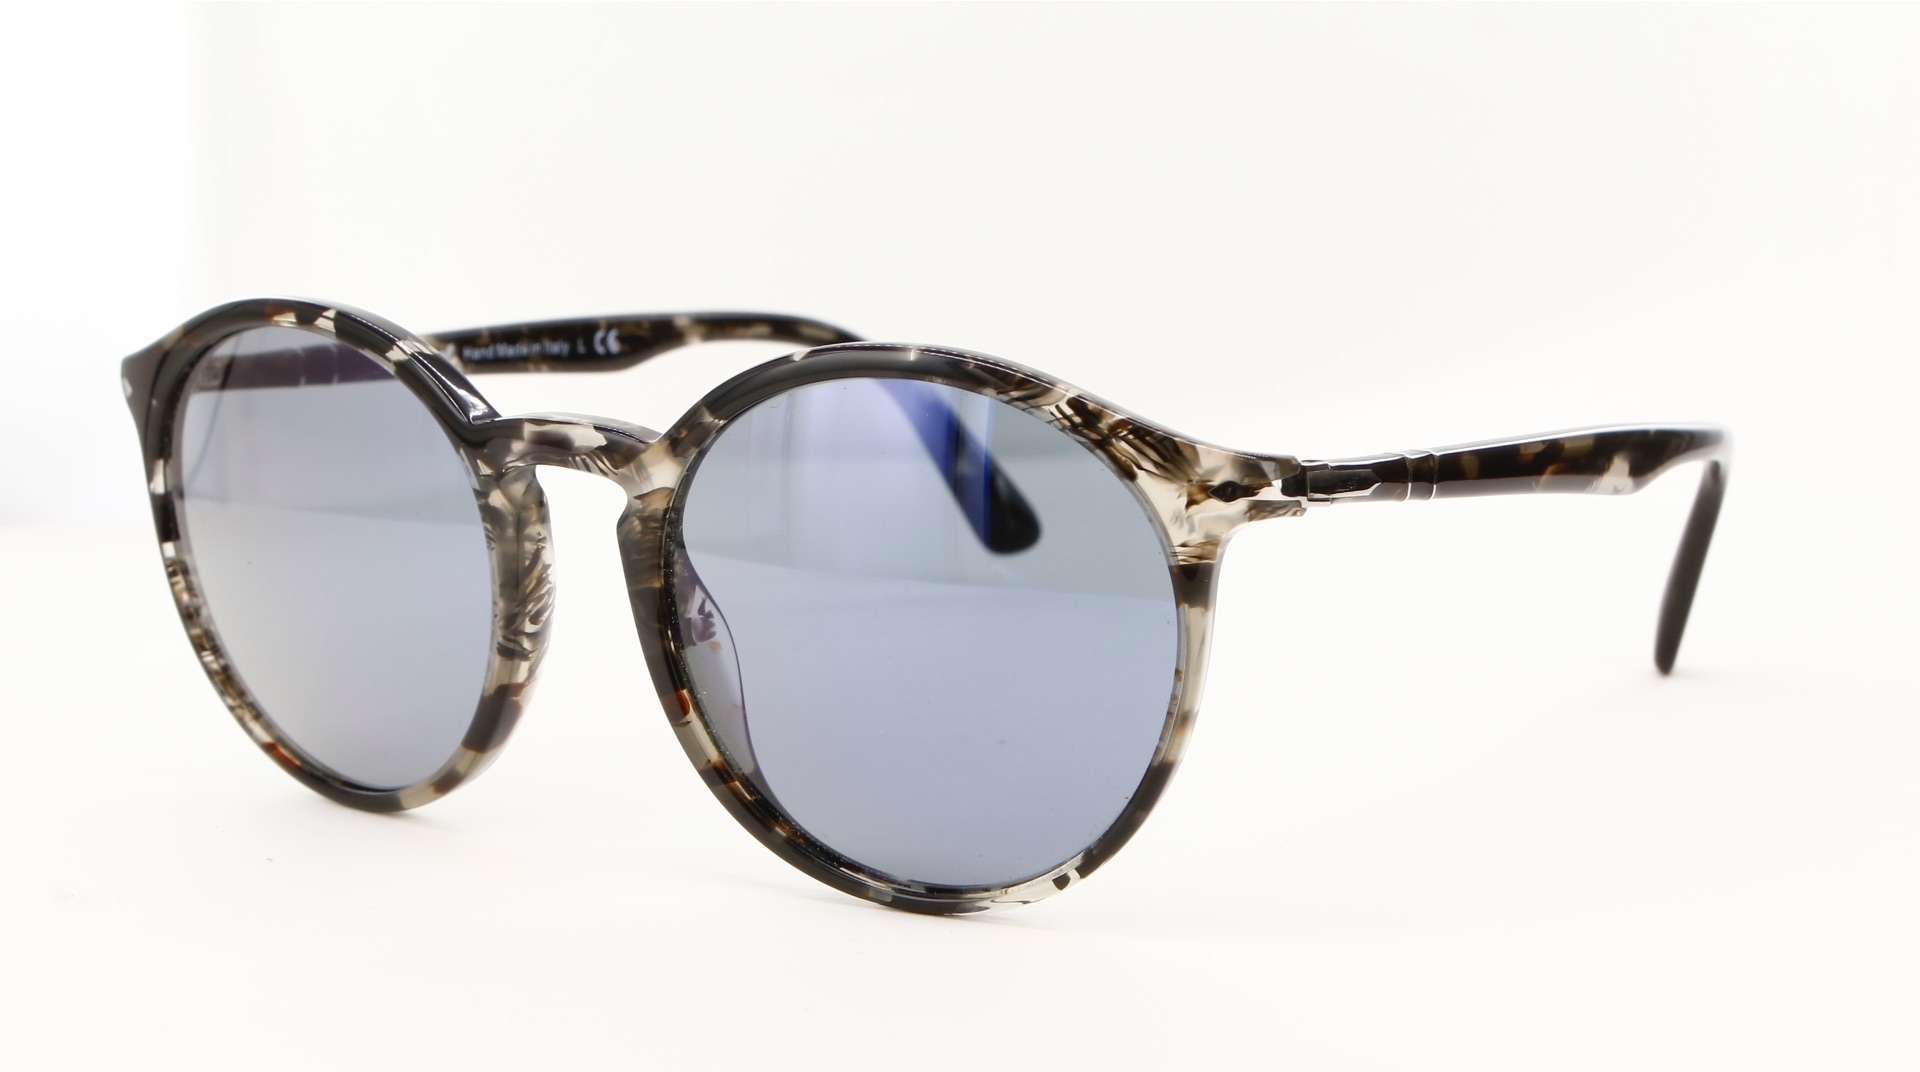 Persol - ref: 80863